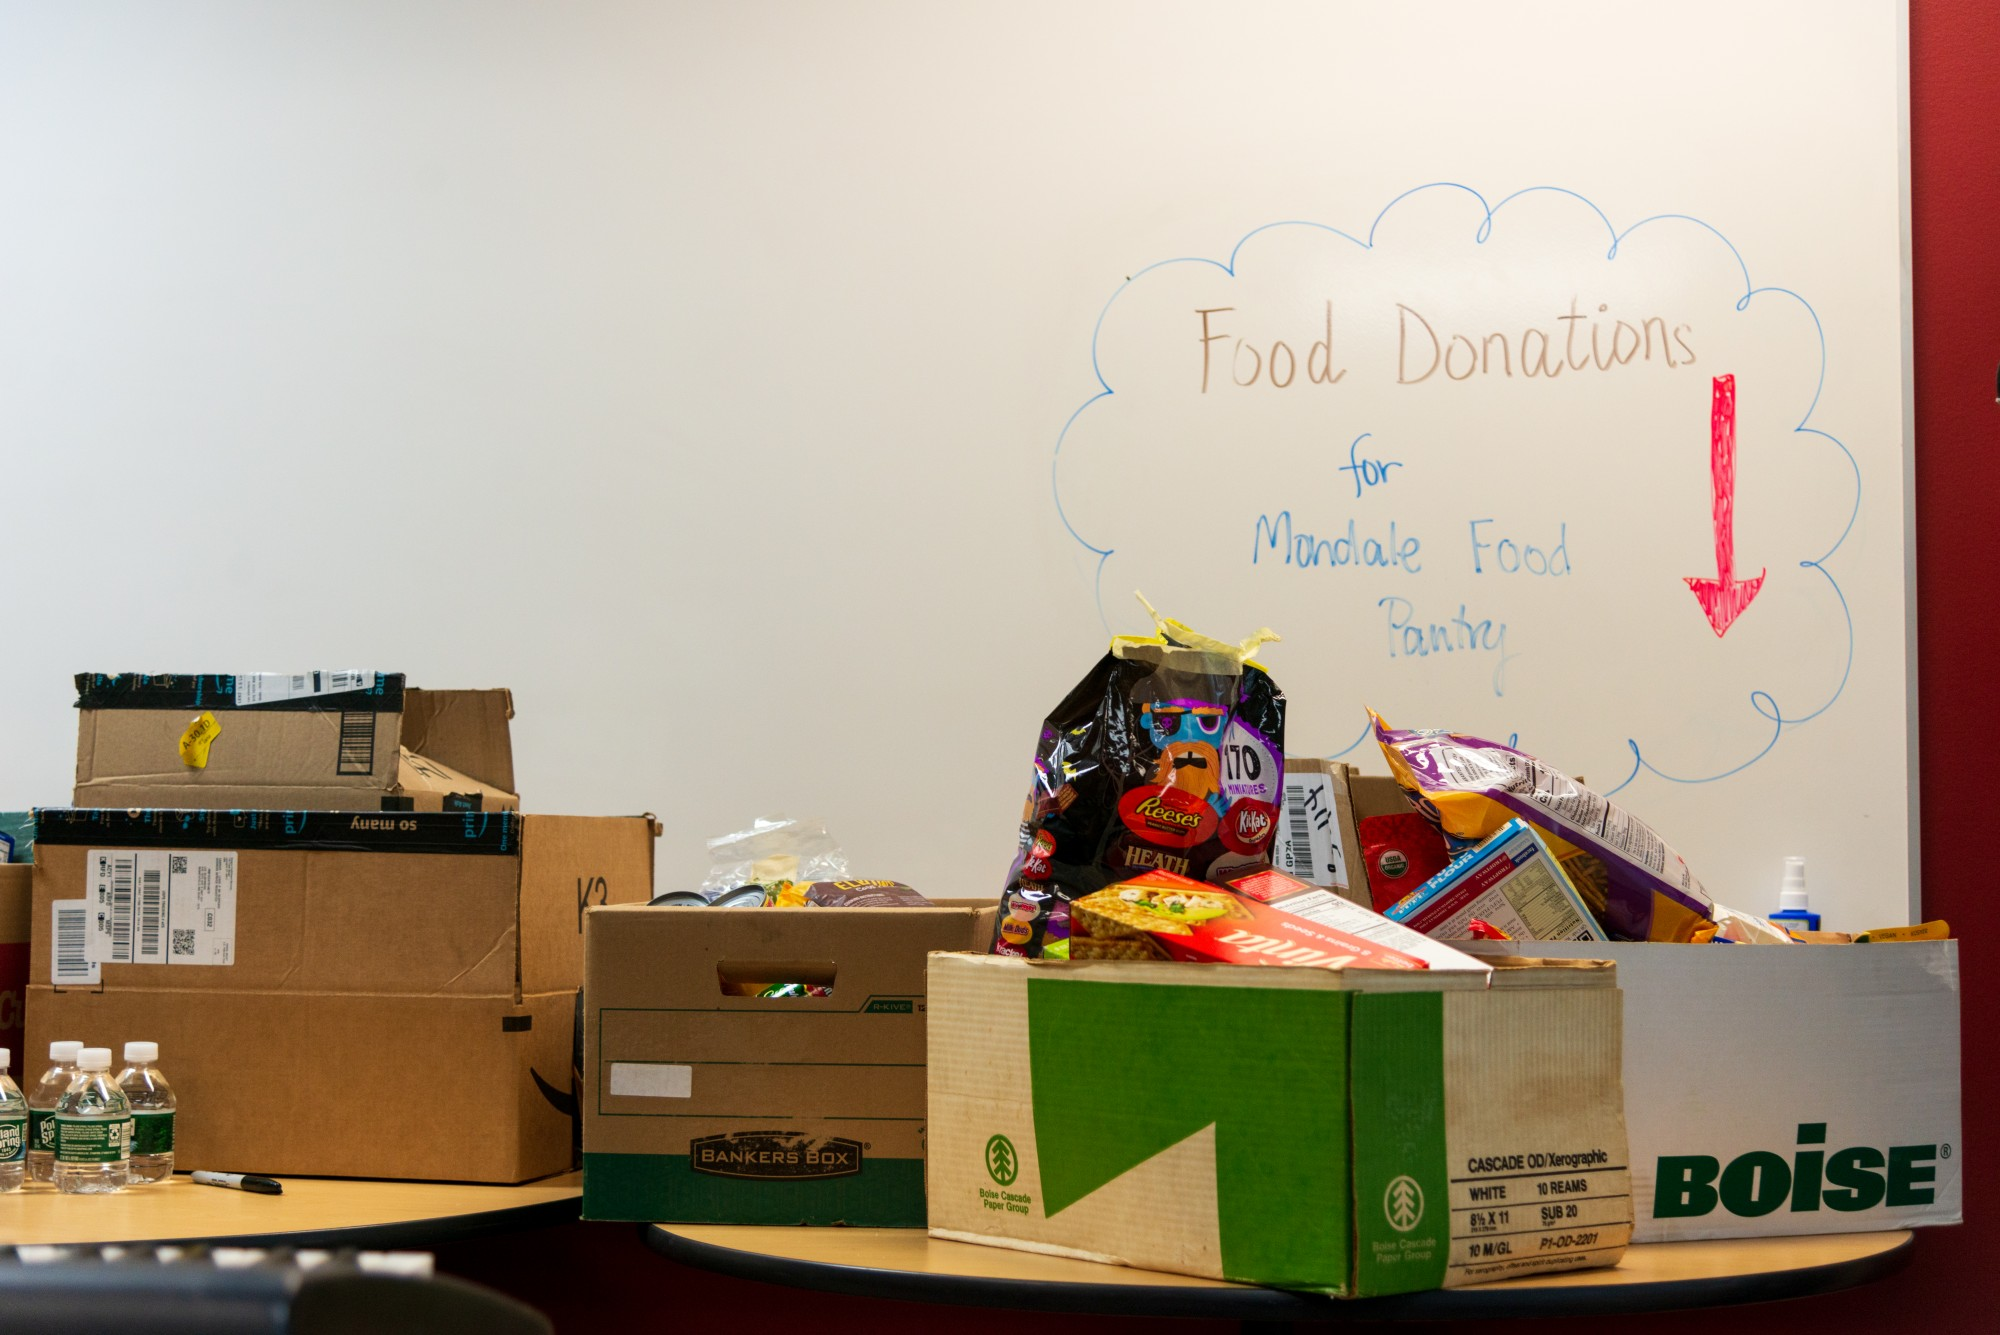 A row of tables stacked with non-perishable food items stands ready to be served in Mondale Hall on Monday, Jan. 20. Known as